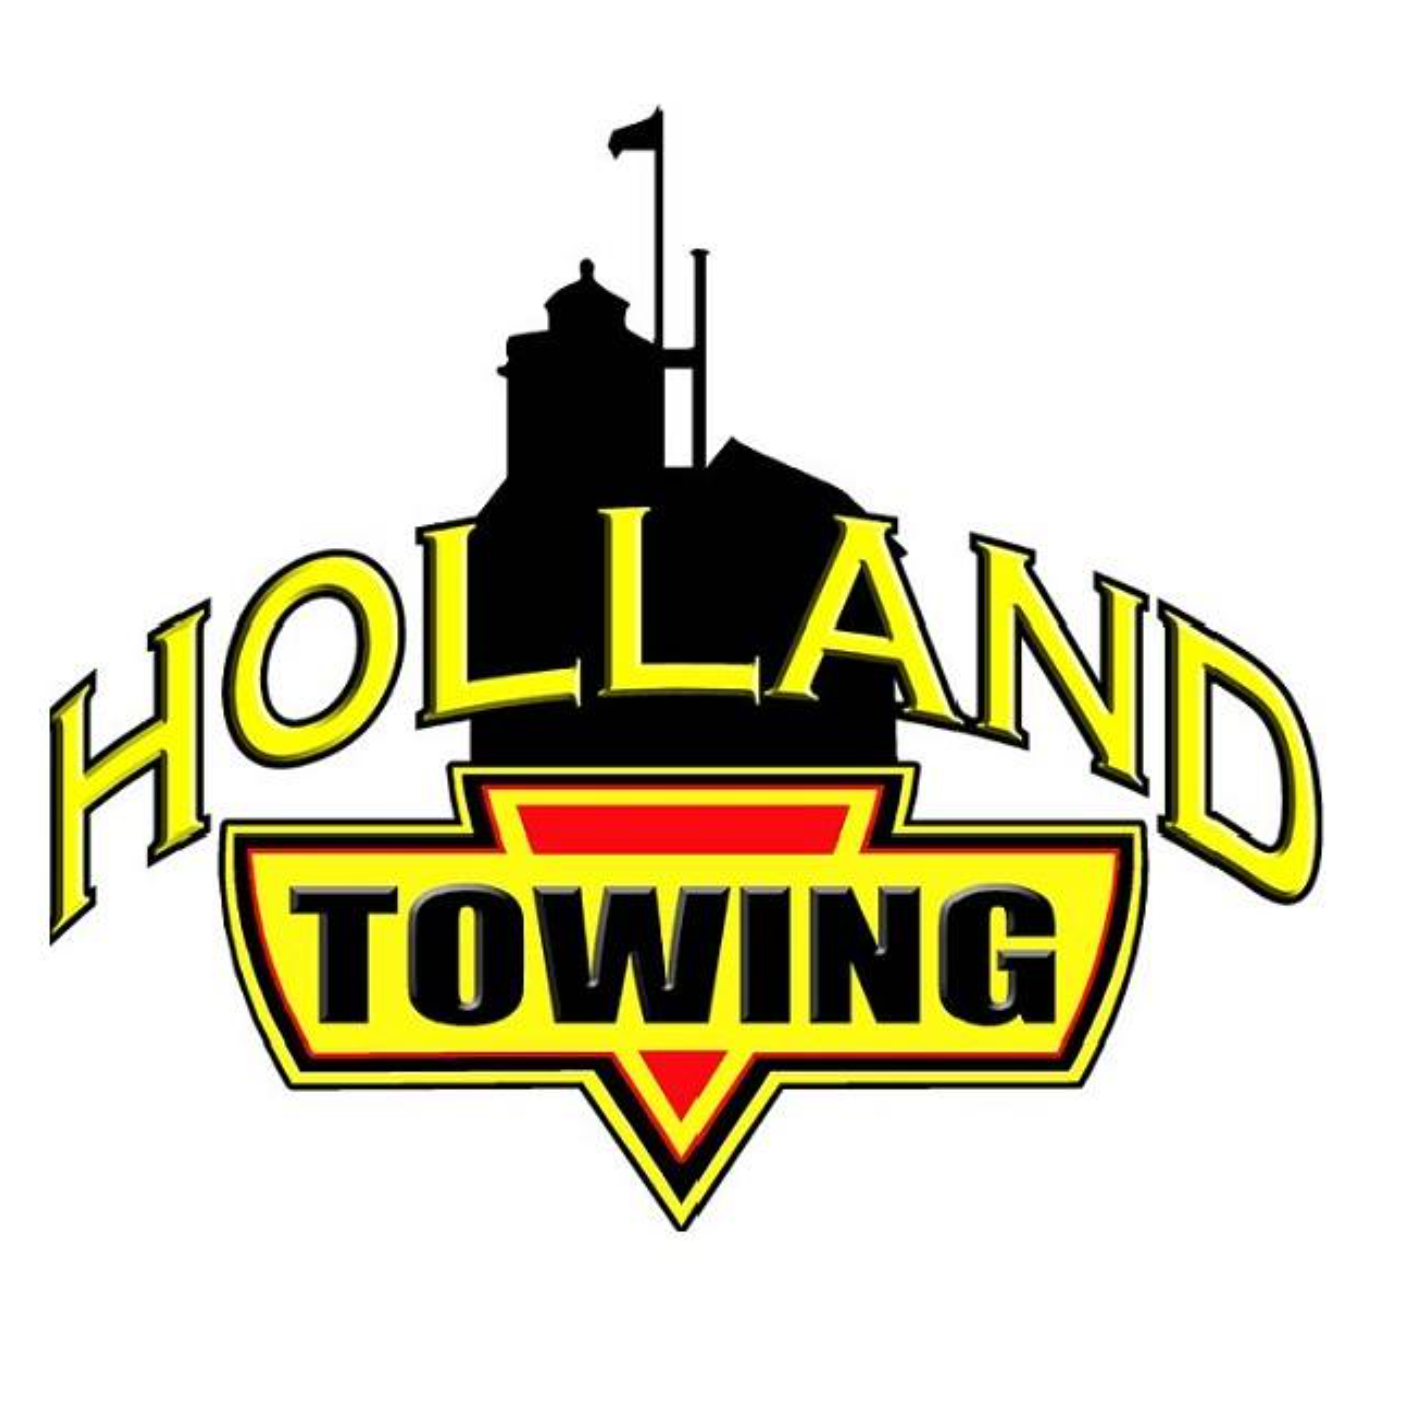 Holland Towing logo